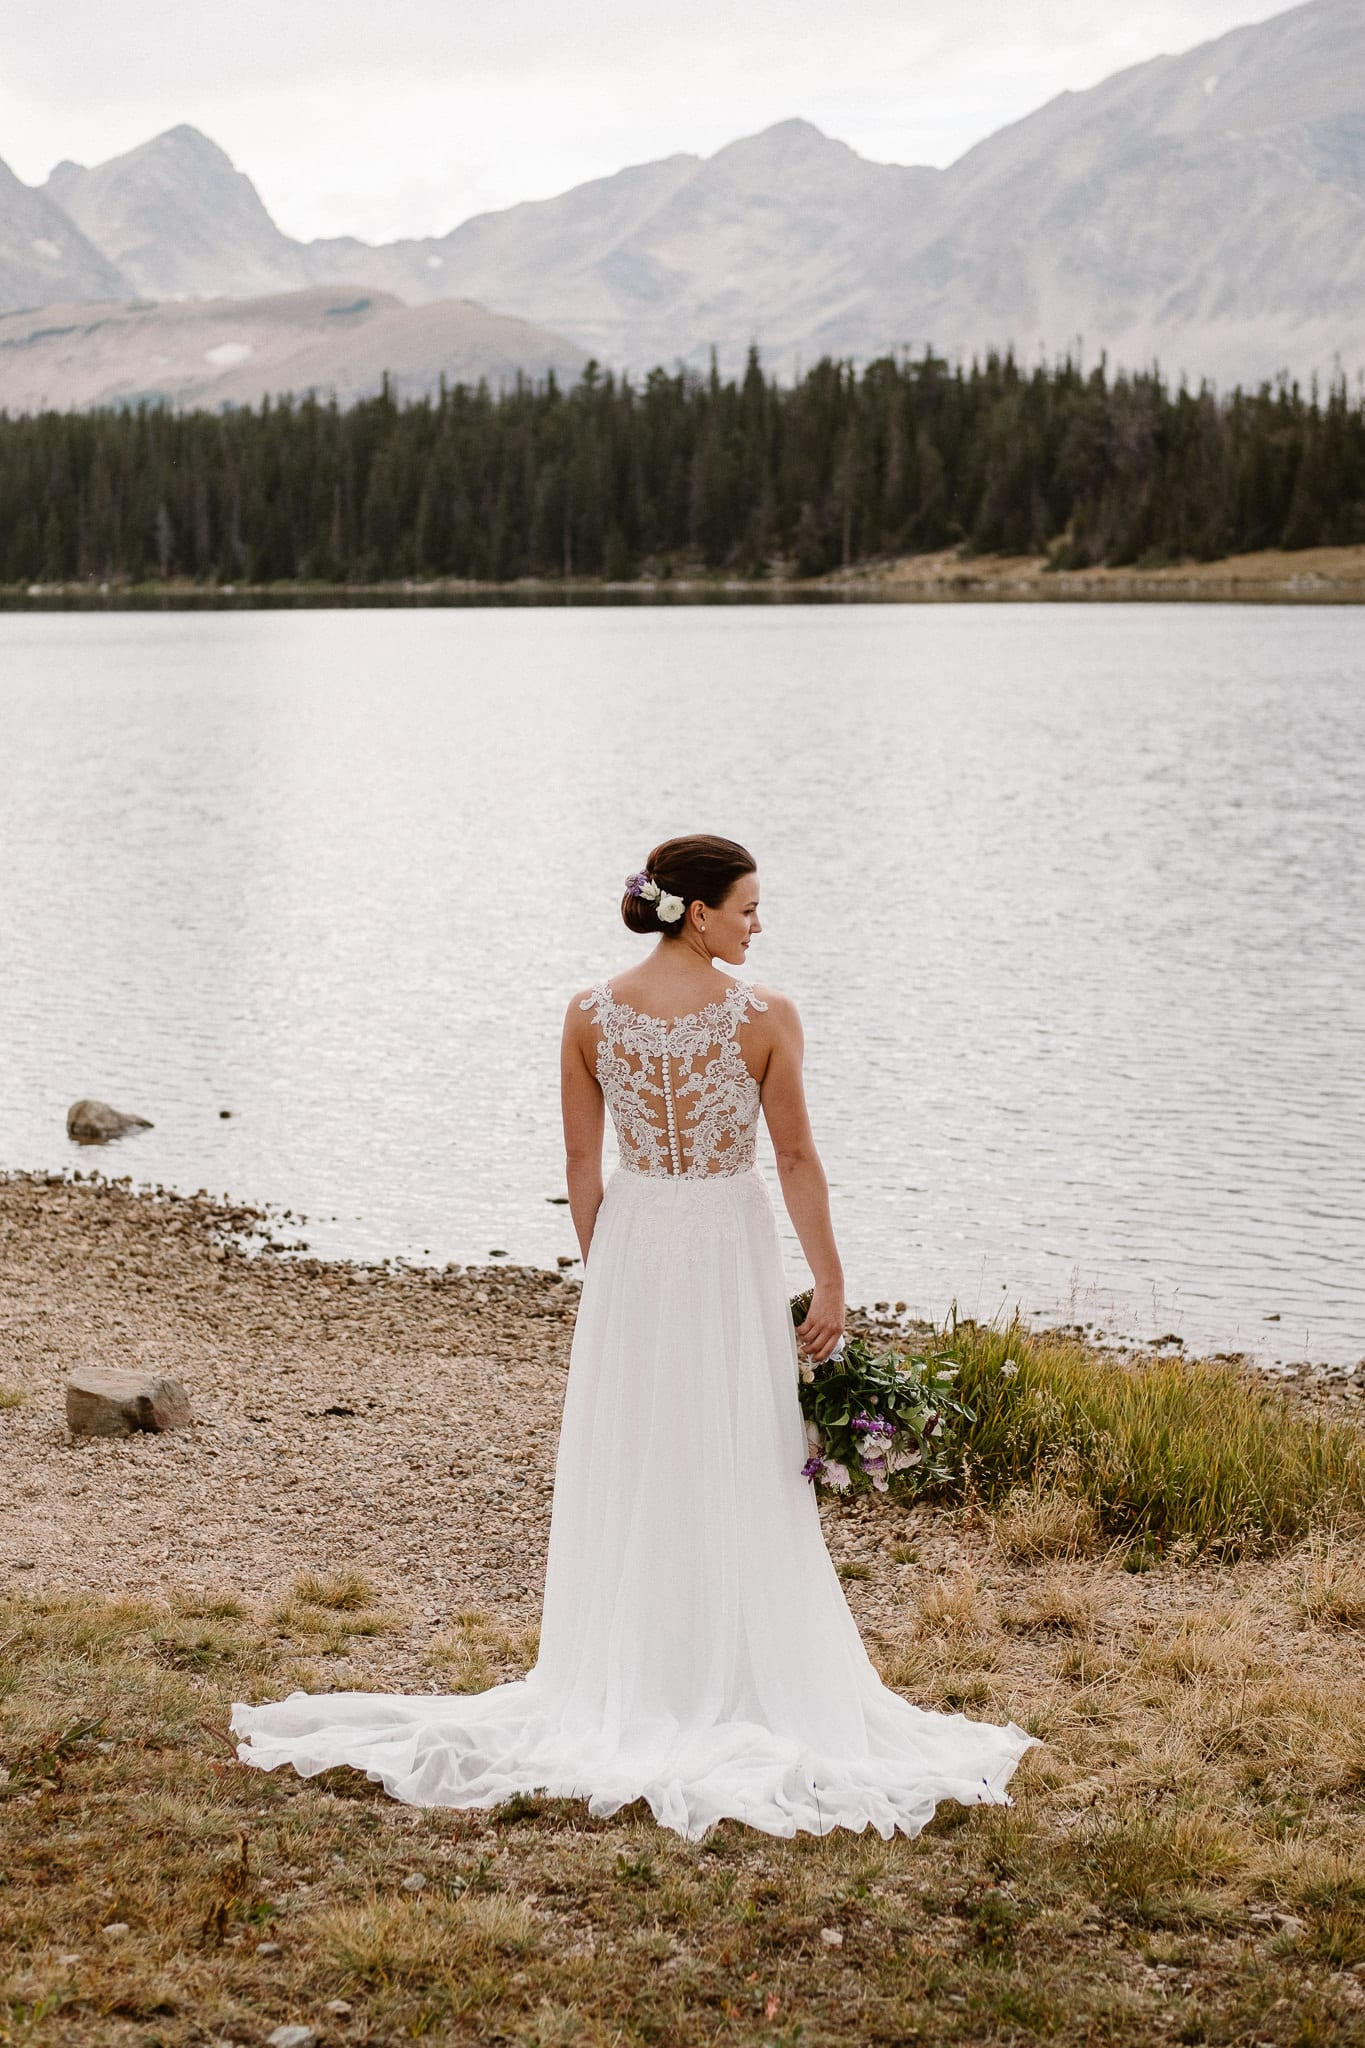 Colorado mountain elopement photographer, alpine lake adventure wedding, Boulder wedding photographer, bride in mountains, wedding dress with lace back